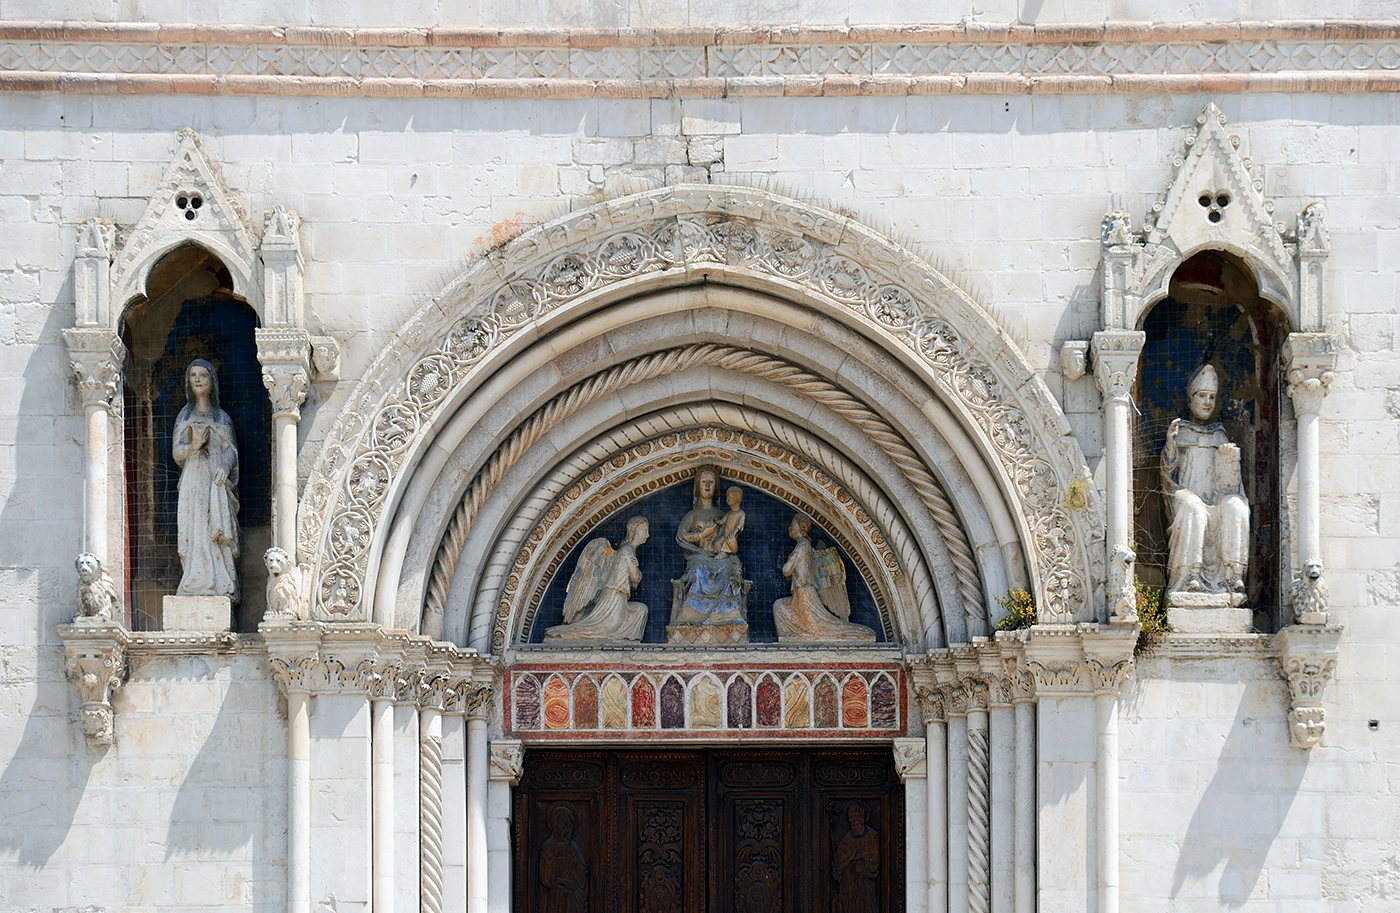 Decoration on the Basilica of St. Benedict in Norcia (photo by Livioandronico2013/Wikimedia Commons) (click to enlarge)